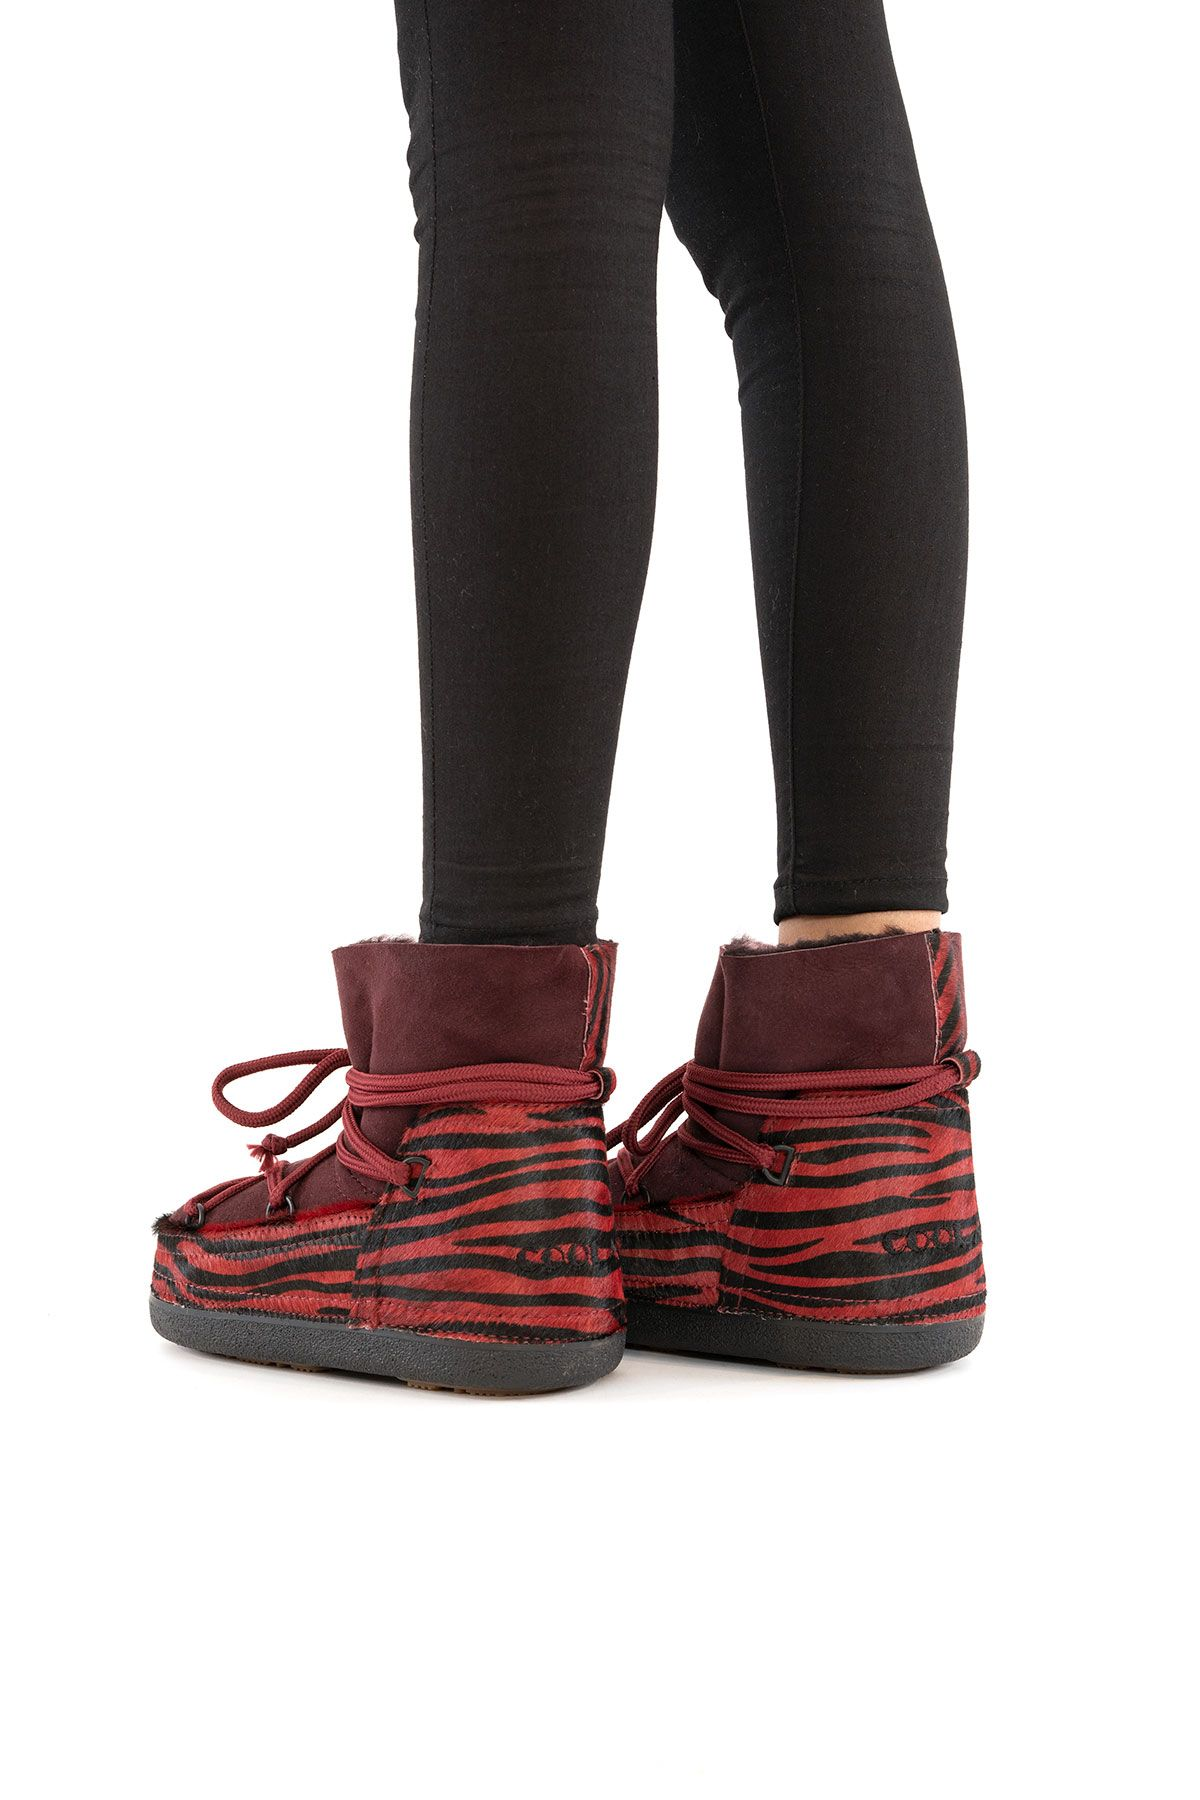 Cool Moon Genuine Leather Sheepskin Lined Women's Snow Boots 251101 Claret red